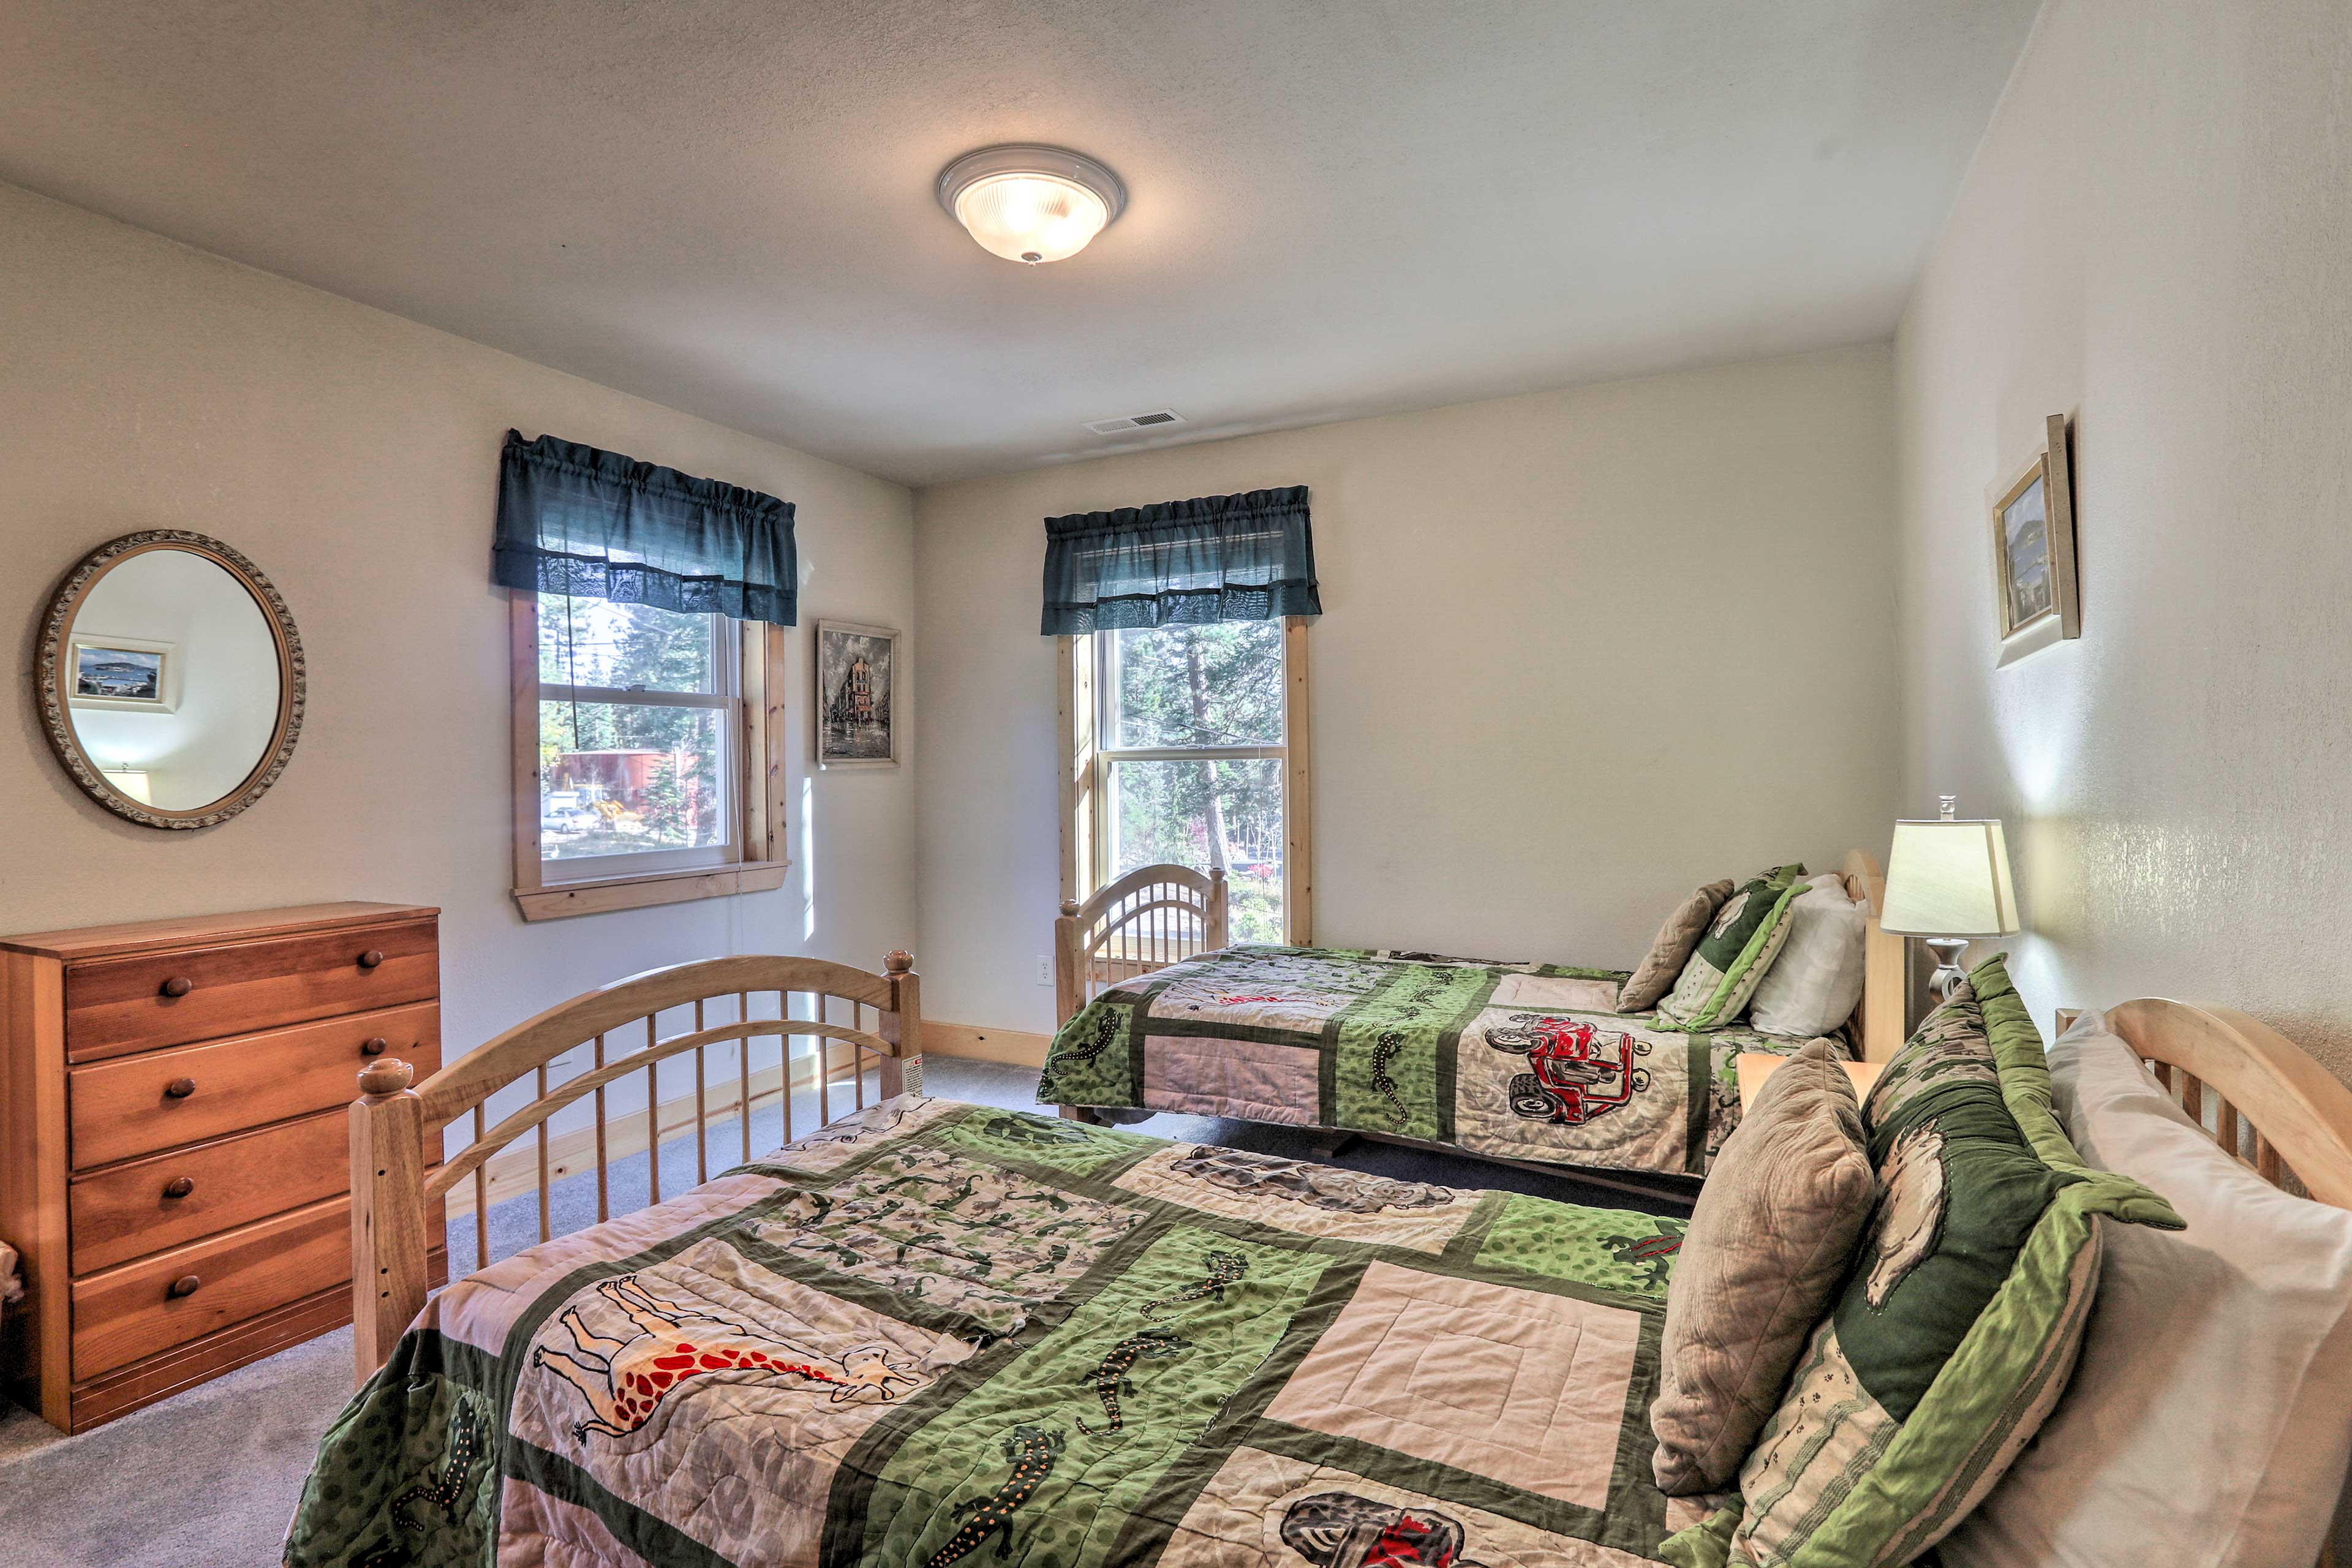 The second bedroom has 2 twin beds and plenty of natural sunlight.